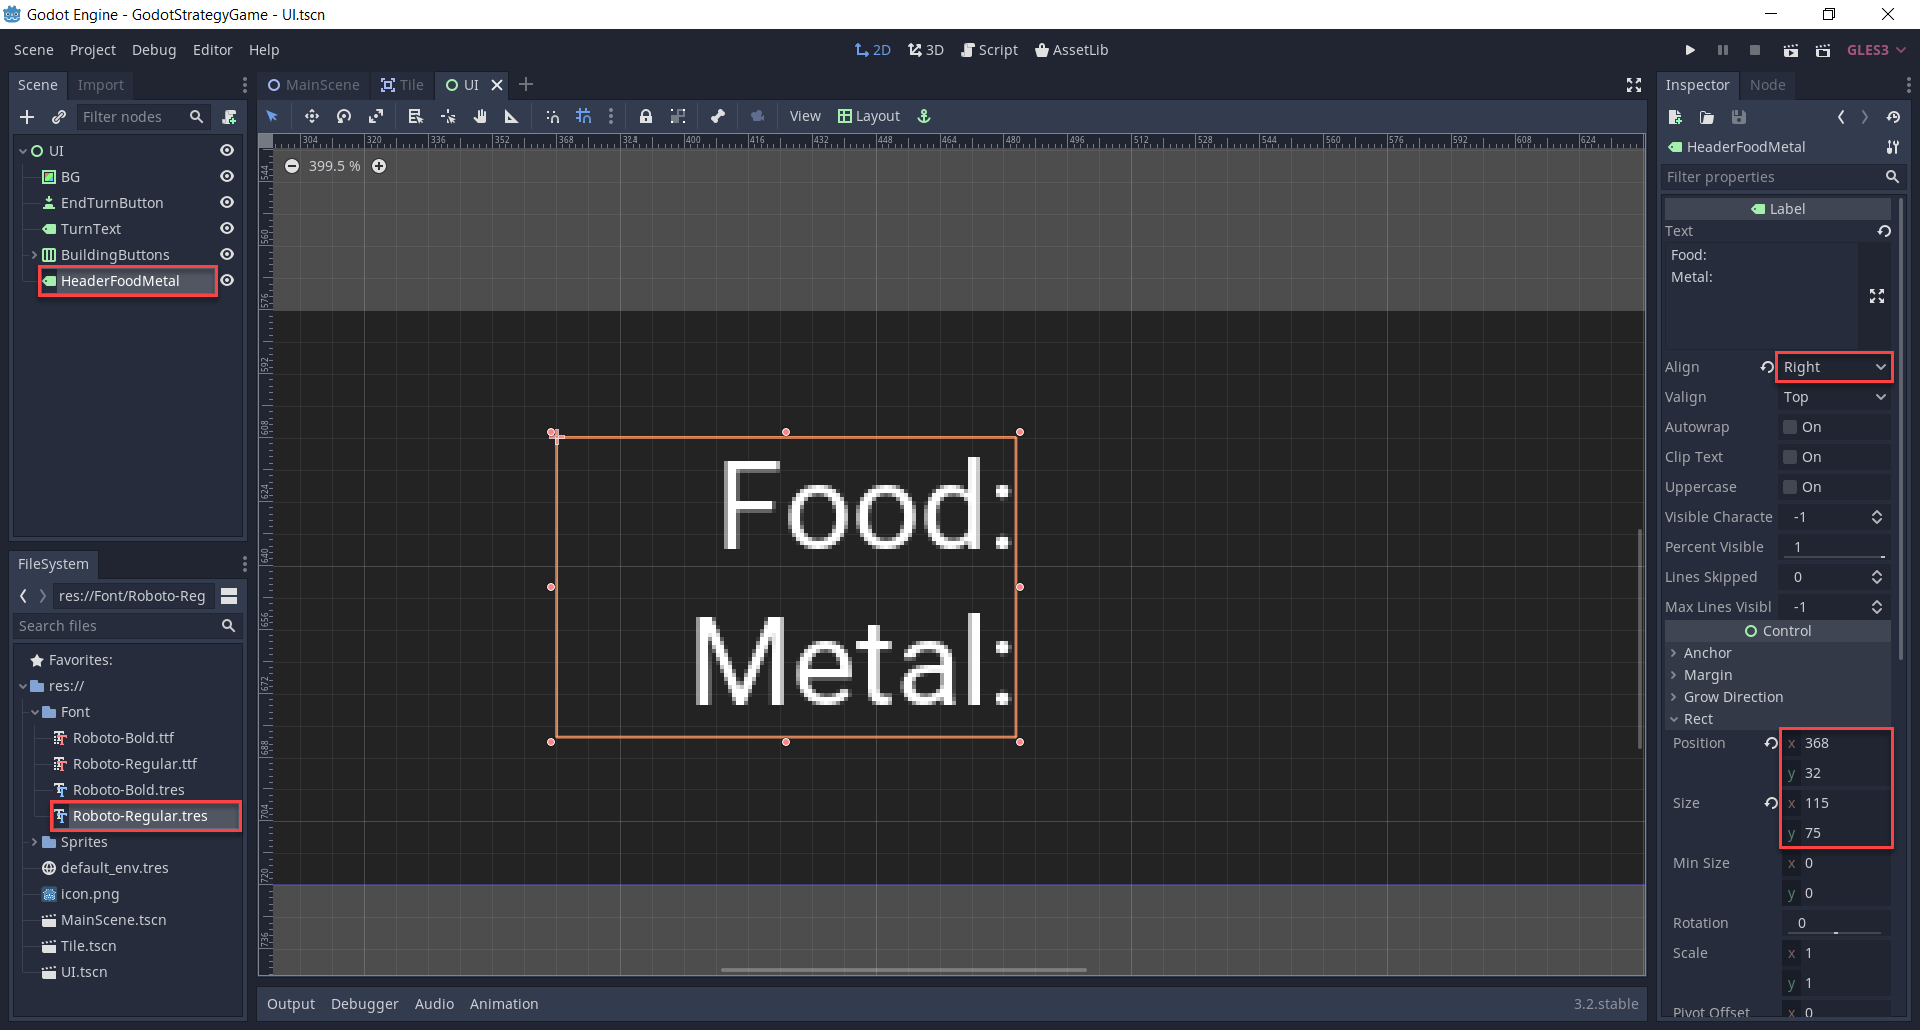 Creating the resource header text for food and metal.